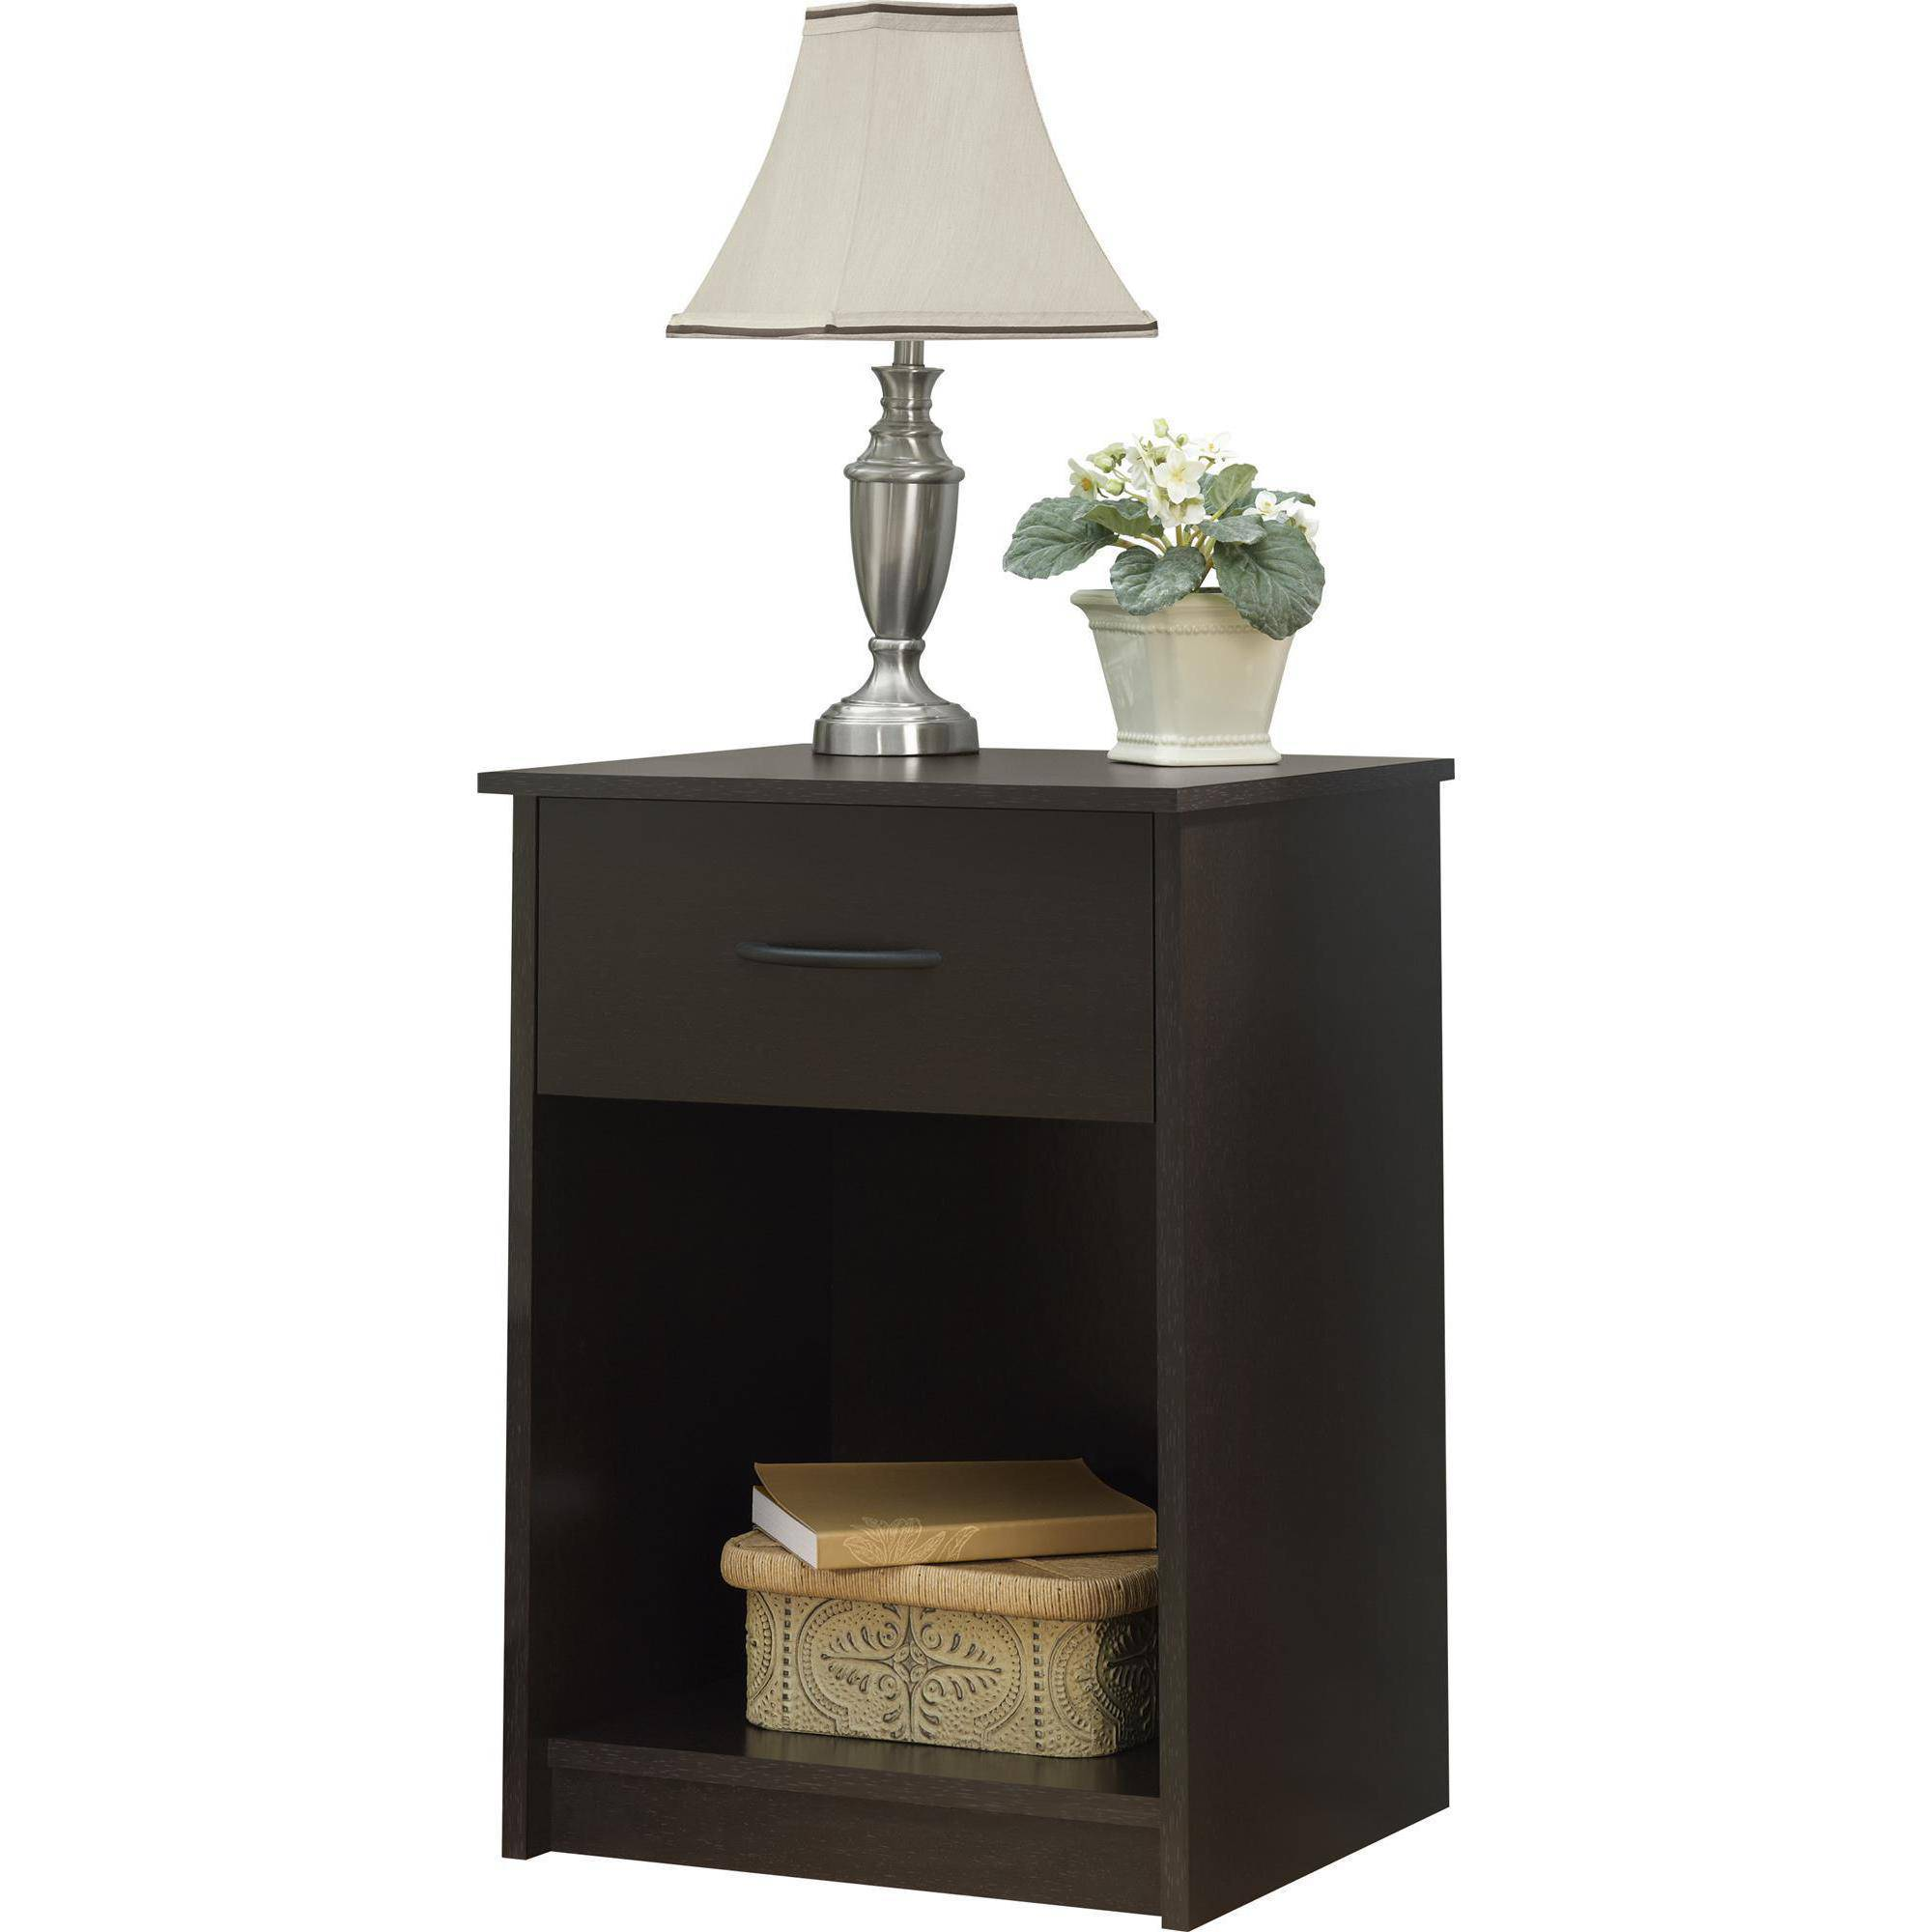 nightstand set bedroom end table drawer bedside shelf brown two tables espresso cinnamon mainstays furniture assembly instructions xlarge dog kennel crate replacement tempered